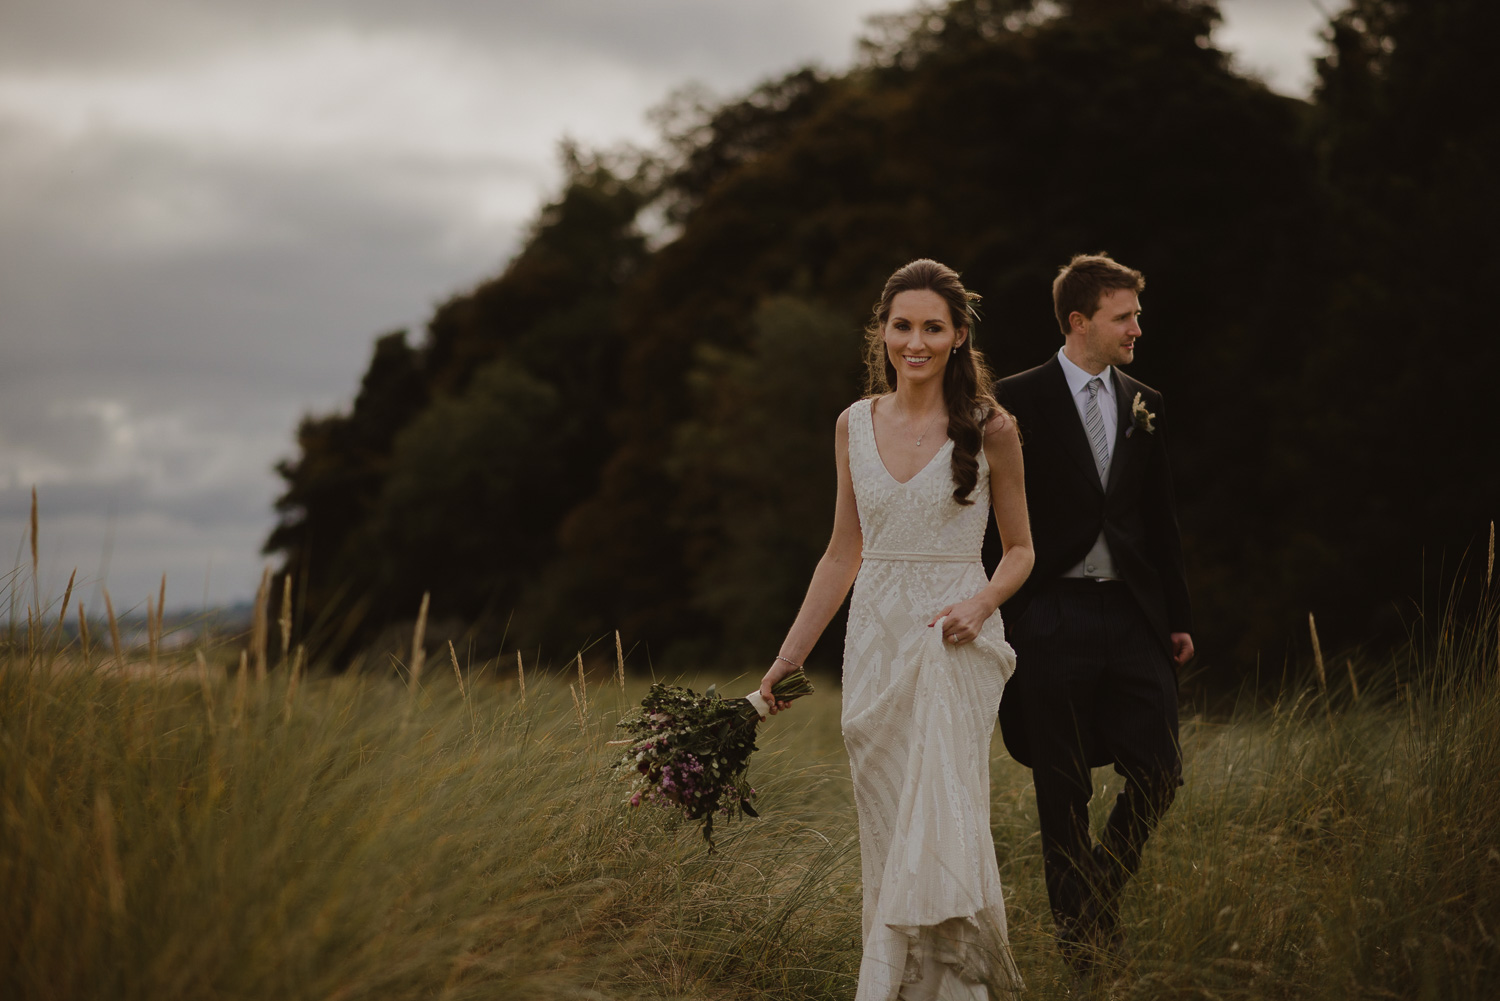 Elliott & Gill - Autumn Wedding | Rathmullan House